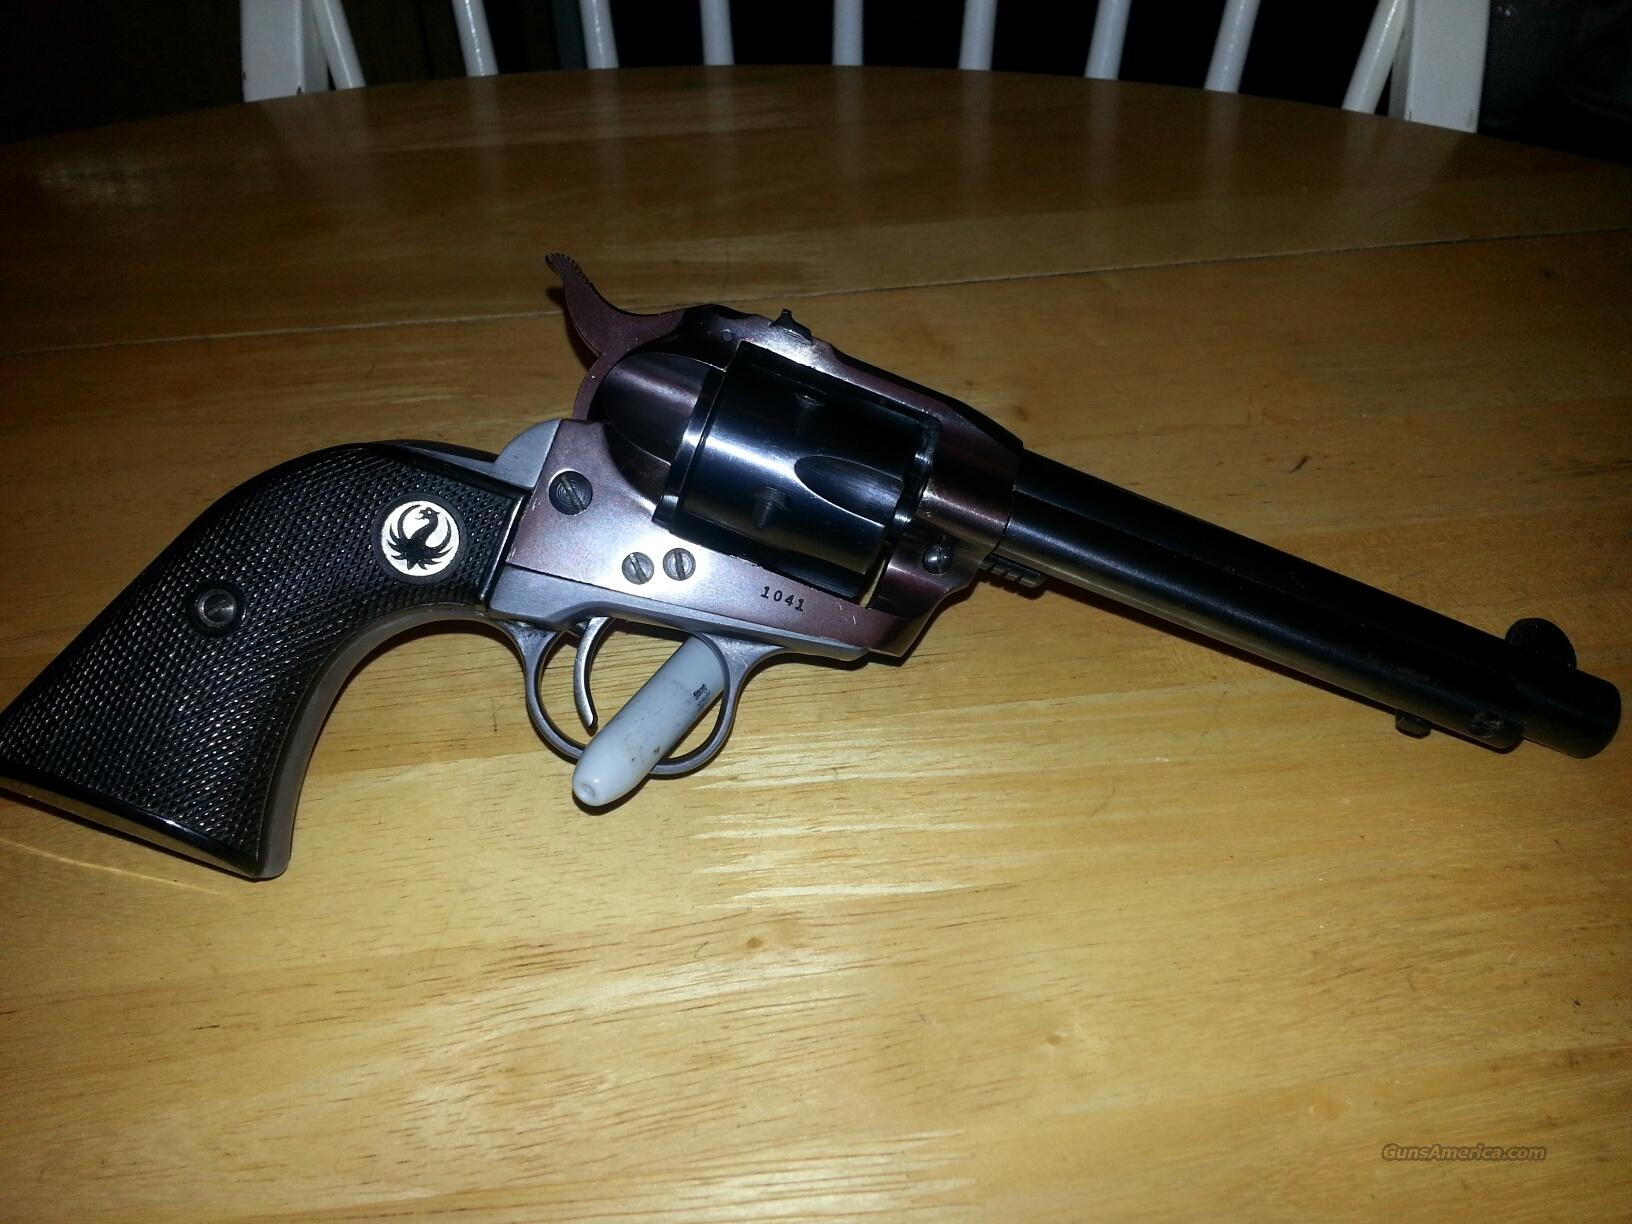 1954 ruger single six 22 L revolver  Guns > Pistols > Ruger Single Action Revolvers > Single Six Type